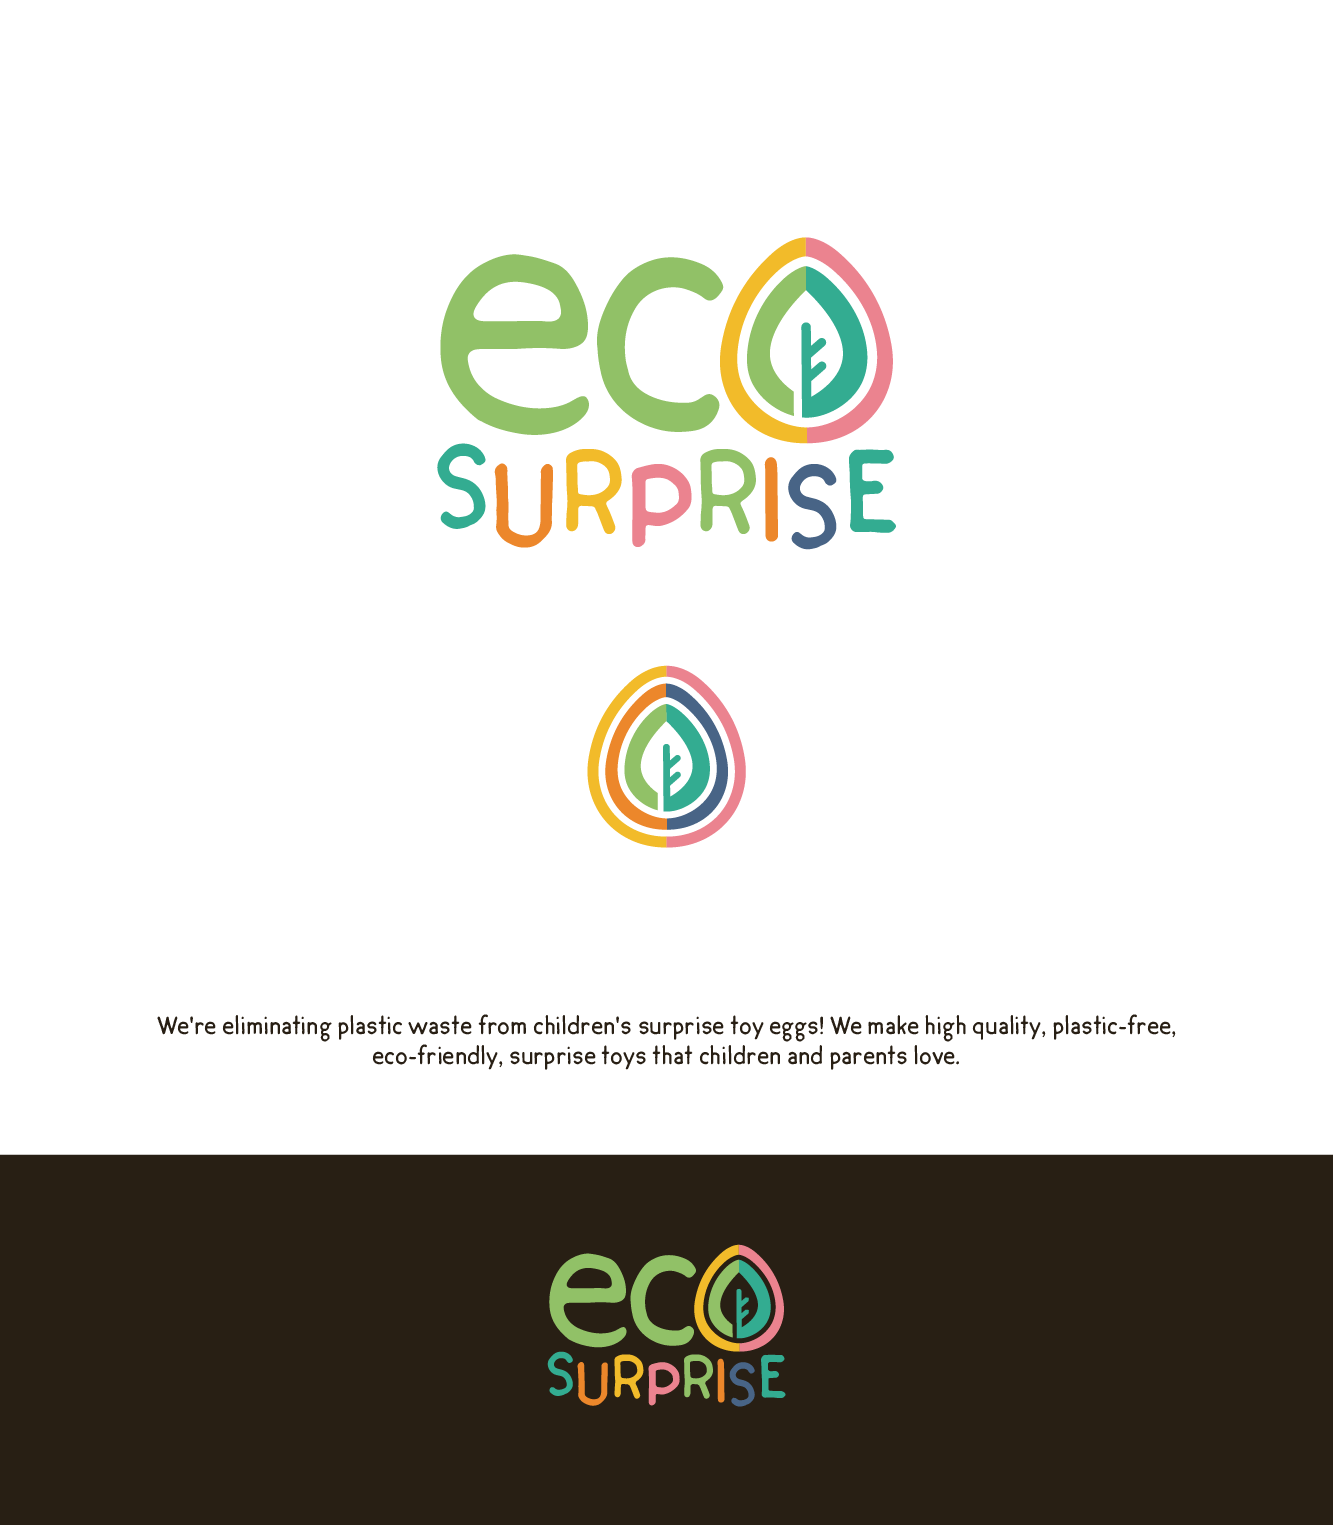 Eco surprise needs an awesome logo!